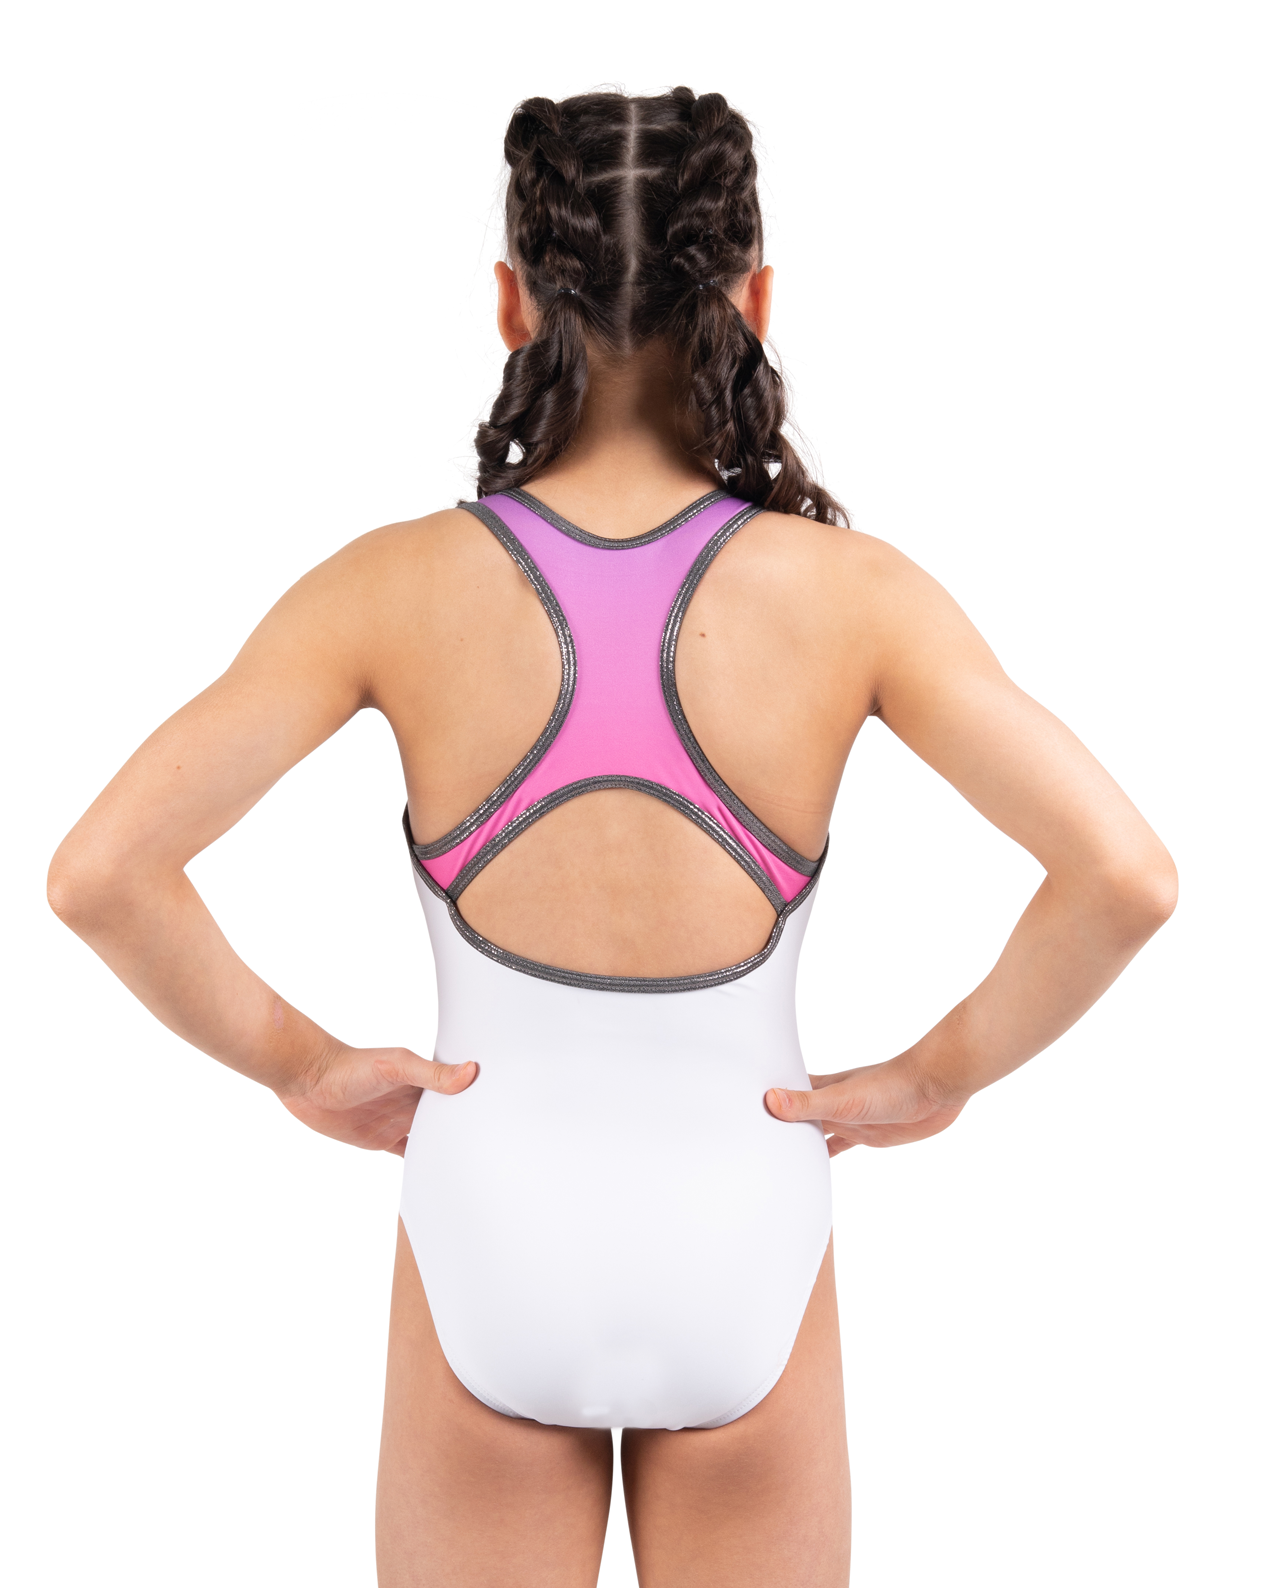 white and pink leotard with silver piping